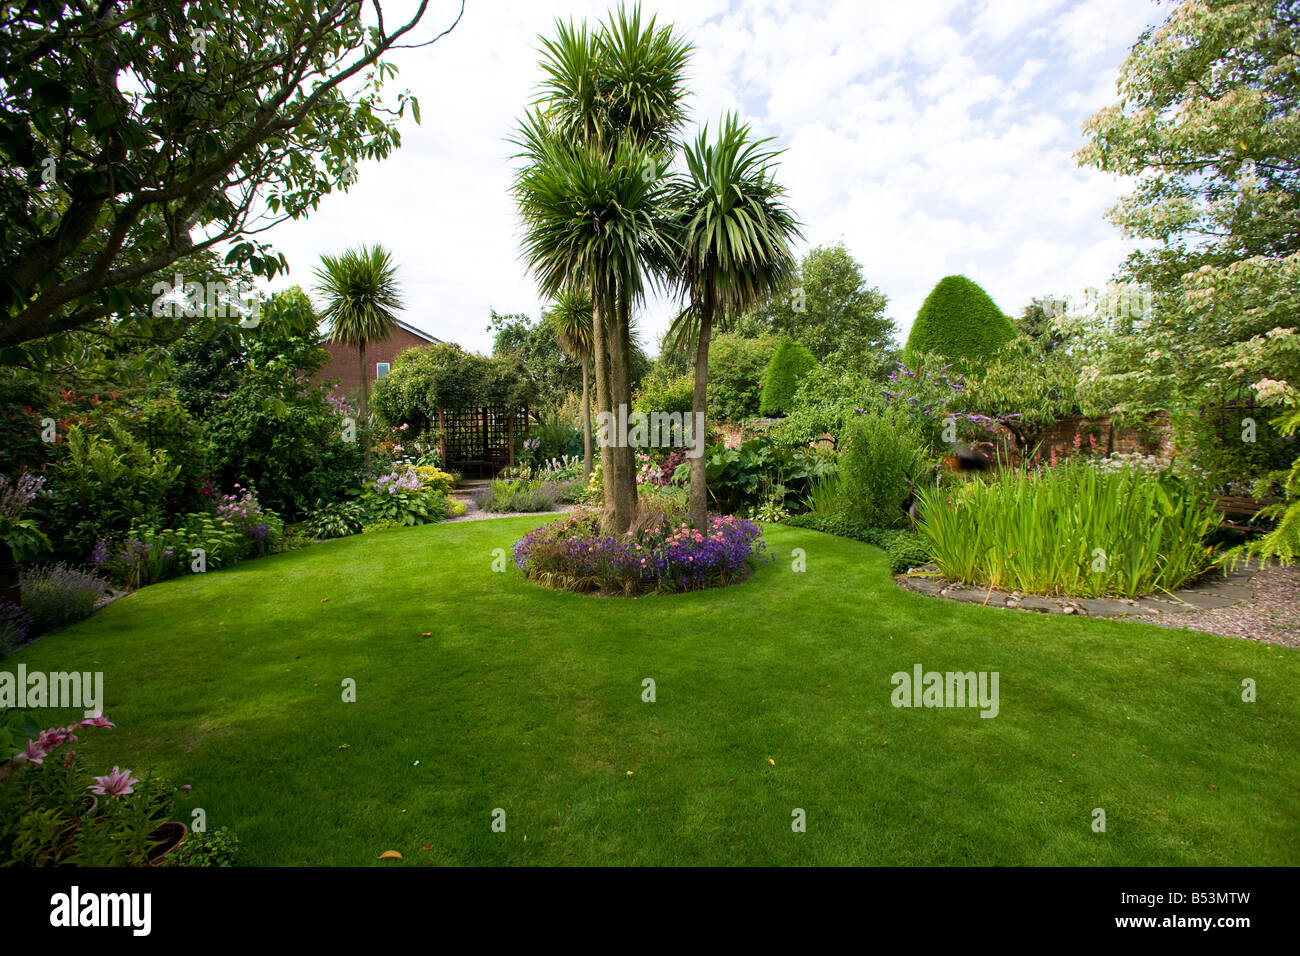 Island Bed Garden Uk Stock Photos Amp Island Bed Garden Uk